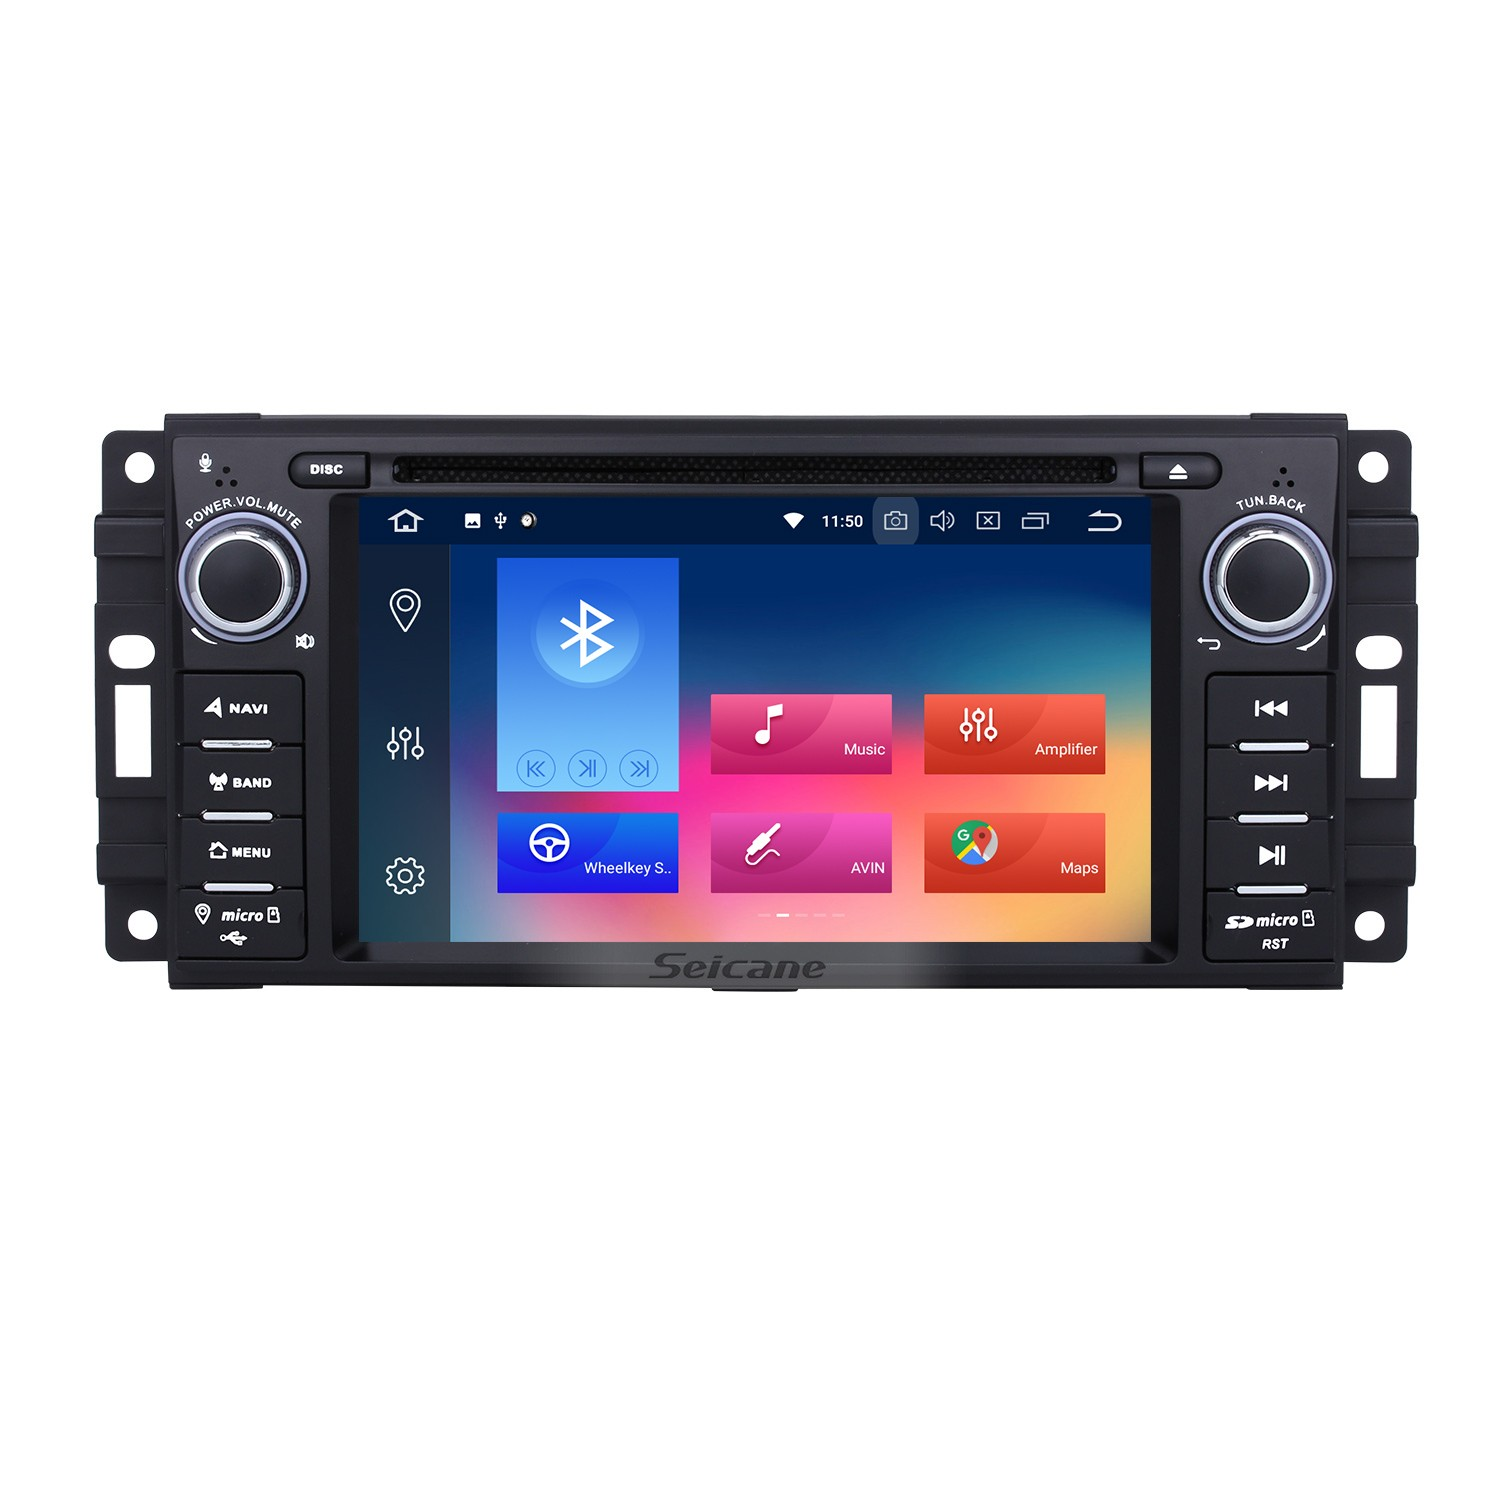 hight resolution of oem 2007 2008 2009 2010 jeep wrangler unlimited android 9 0 radio gps navi dvd player stereo upgrade with bluetooth wifi 1080p video usb sd mirror link